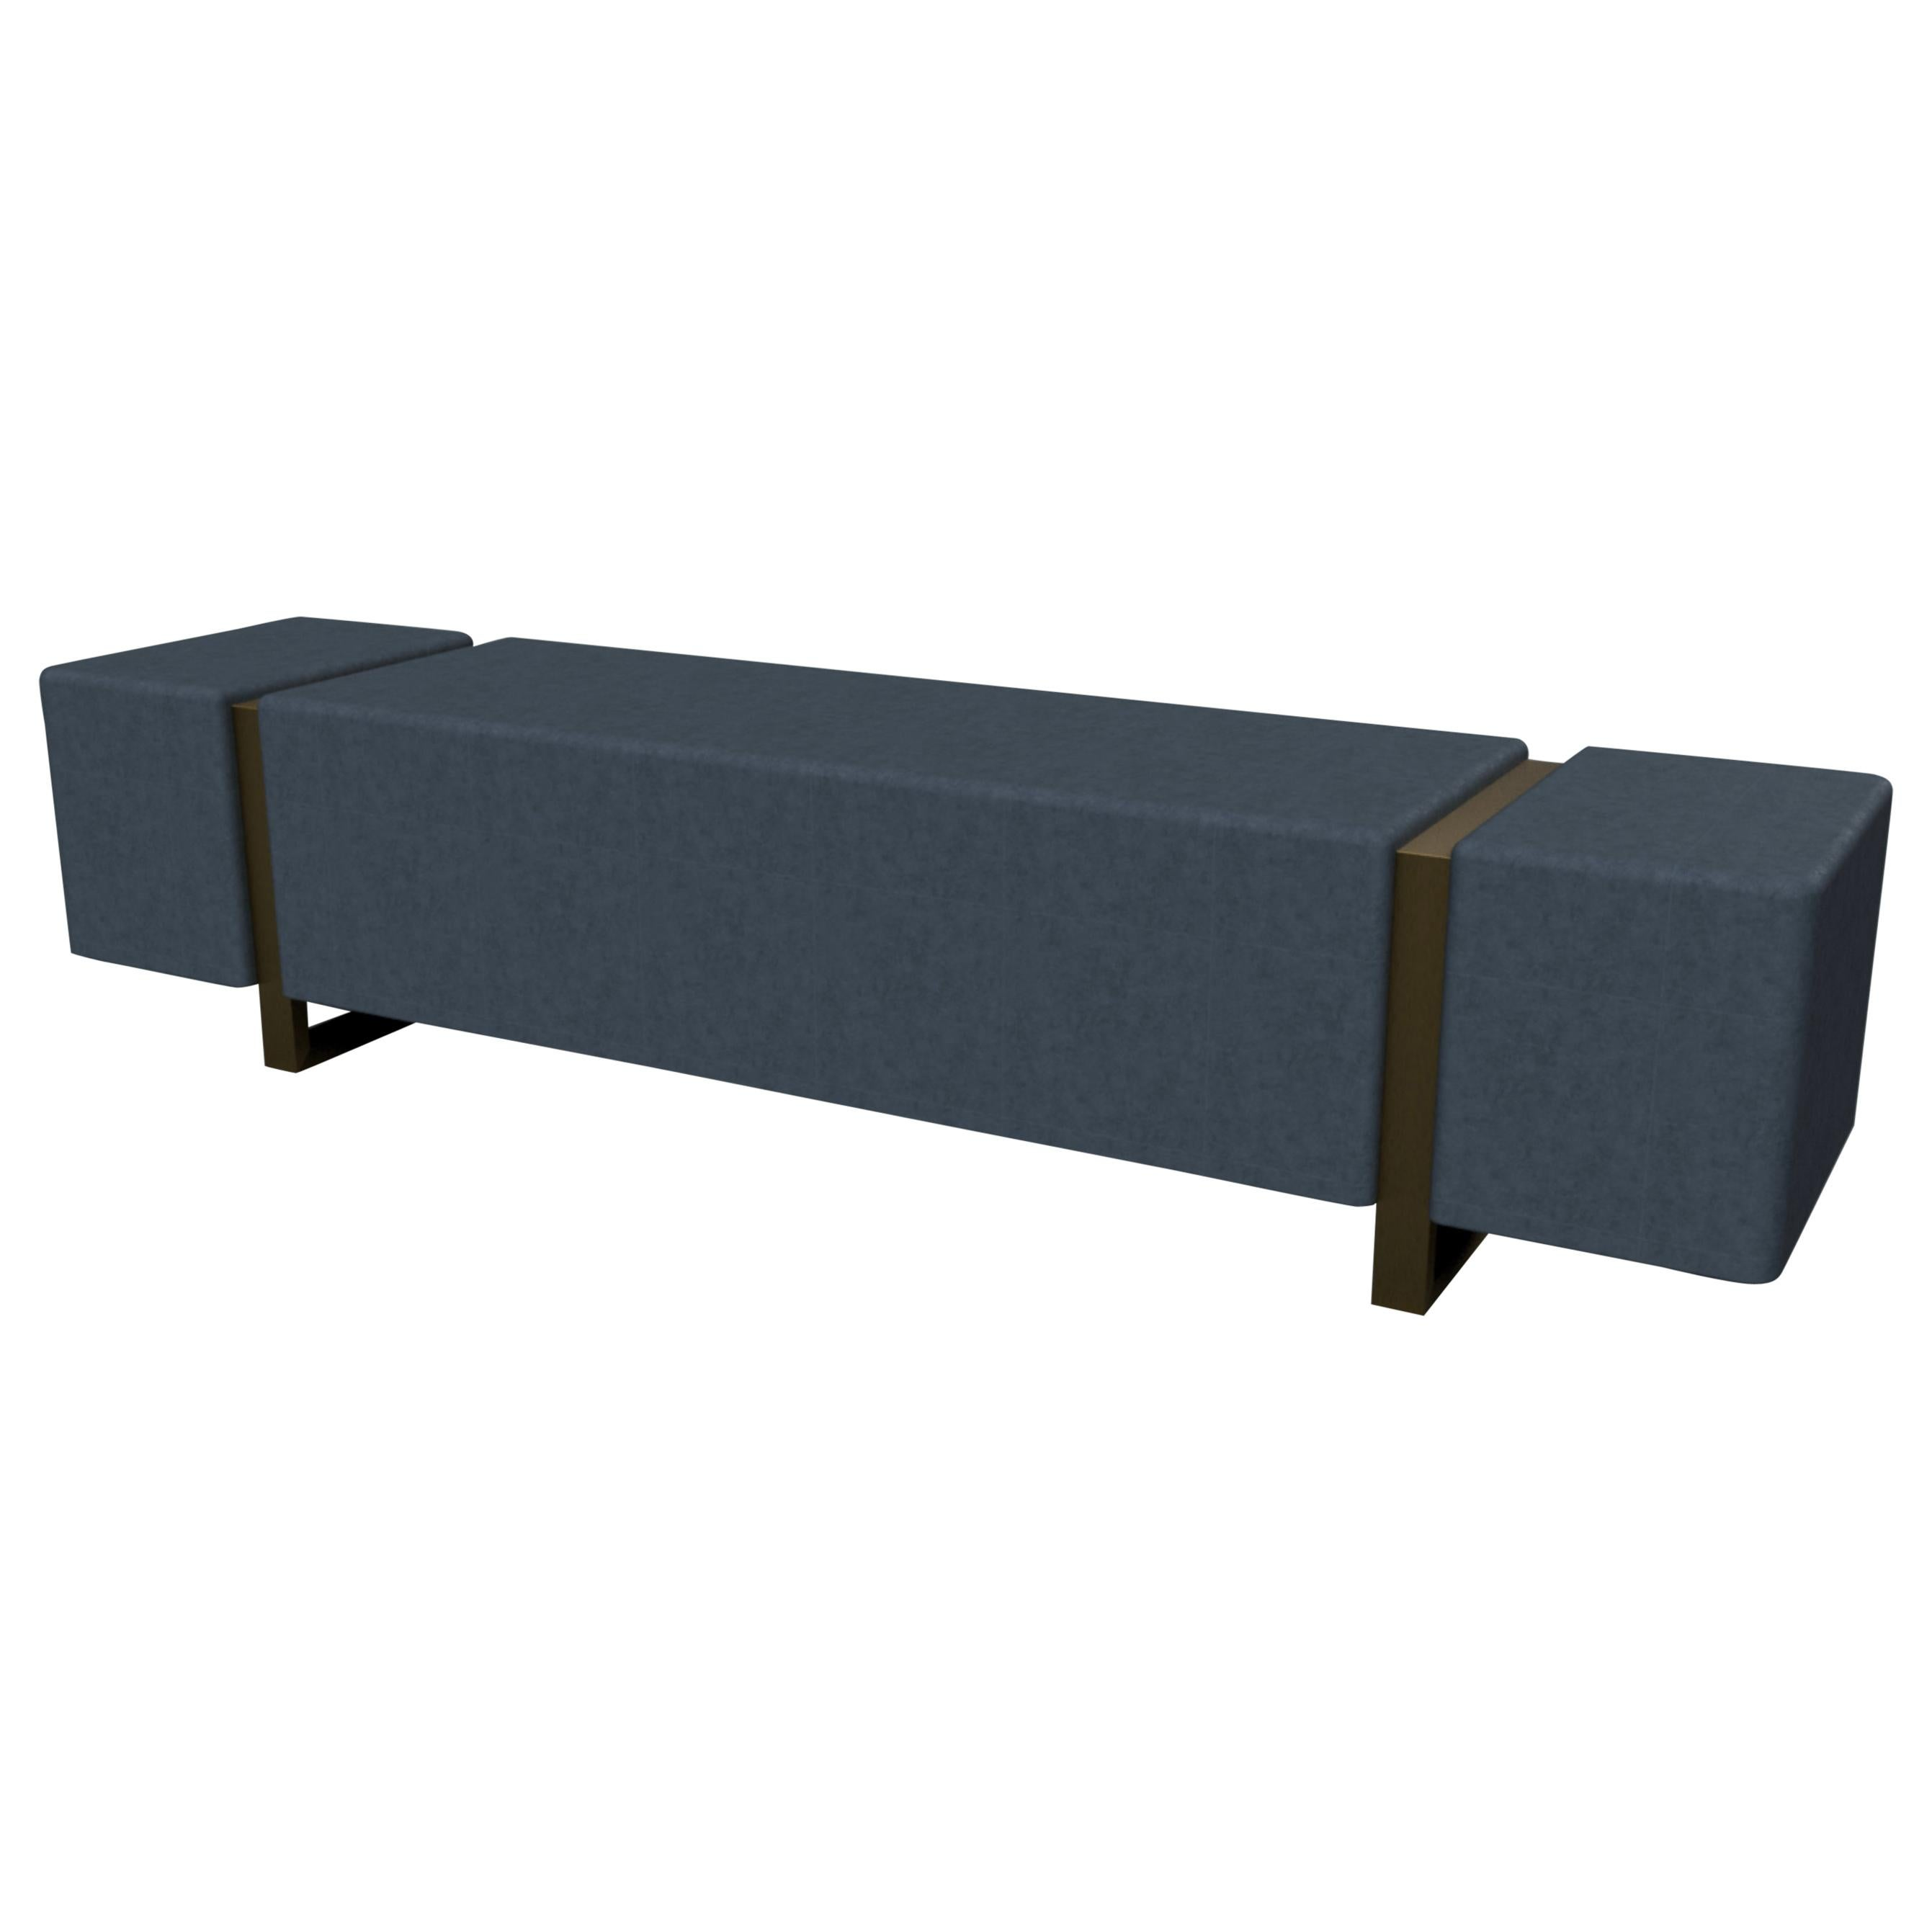 Ercole Bench Upholstered in Novasuede with Metal Powder Coated Legs